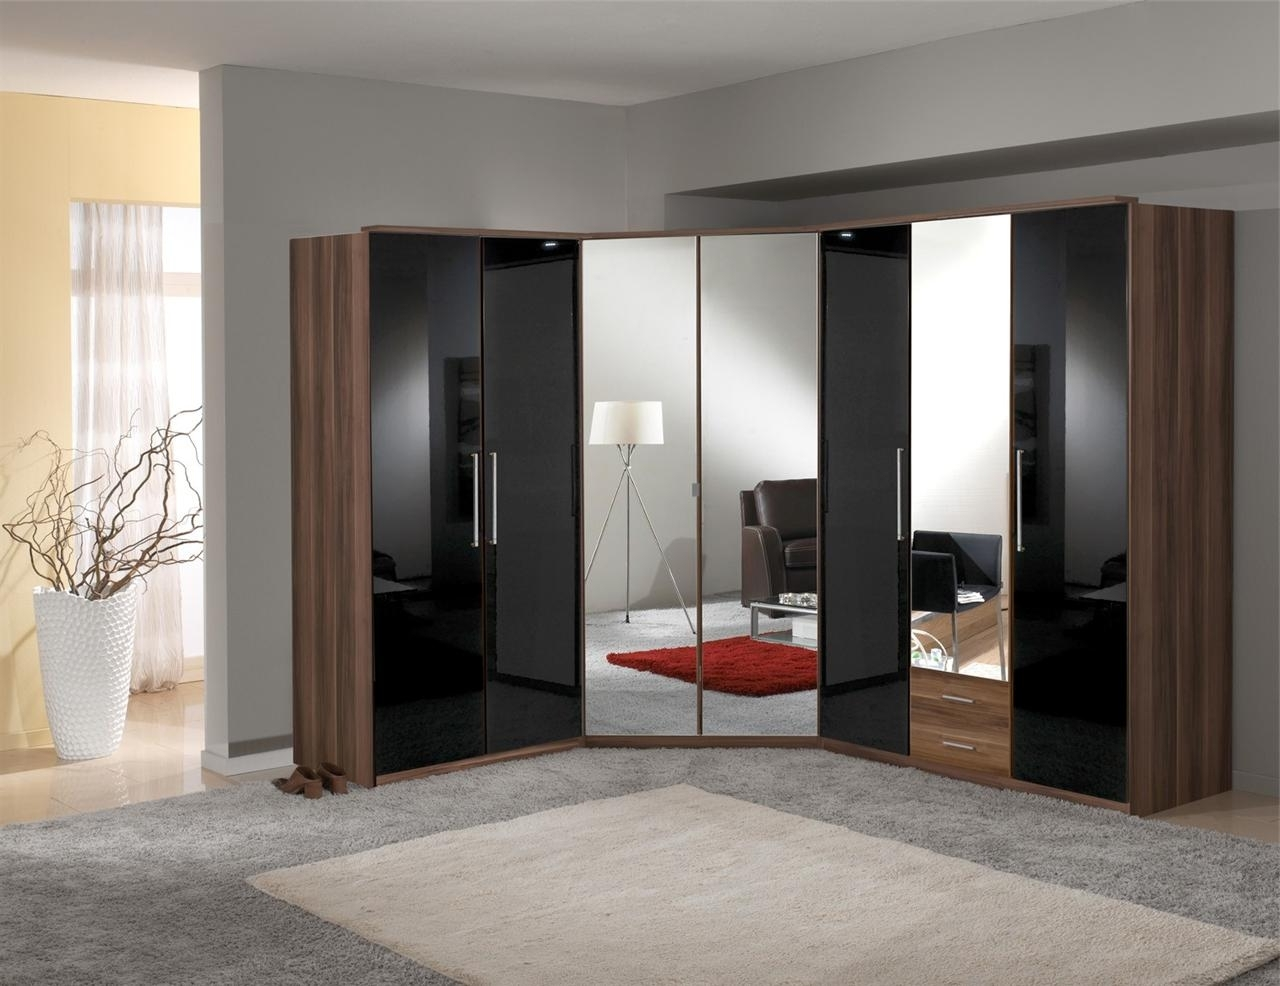 Newest Pax Corner Wardrobe For Model Inspirations — Farmhouse Design And Inside Black Corner Wardrobes (View 13 of 15)